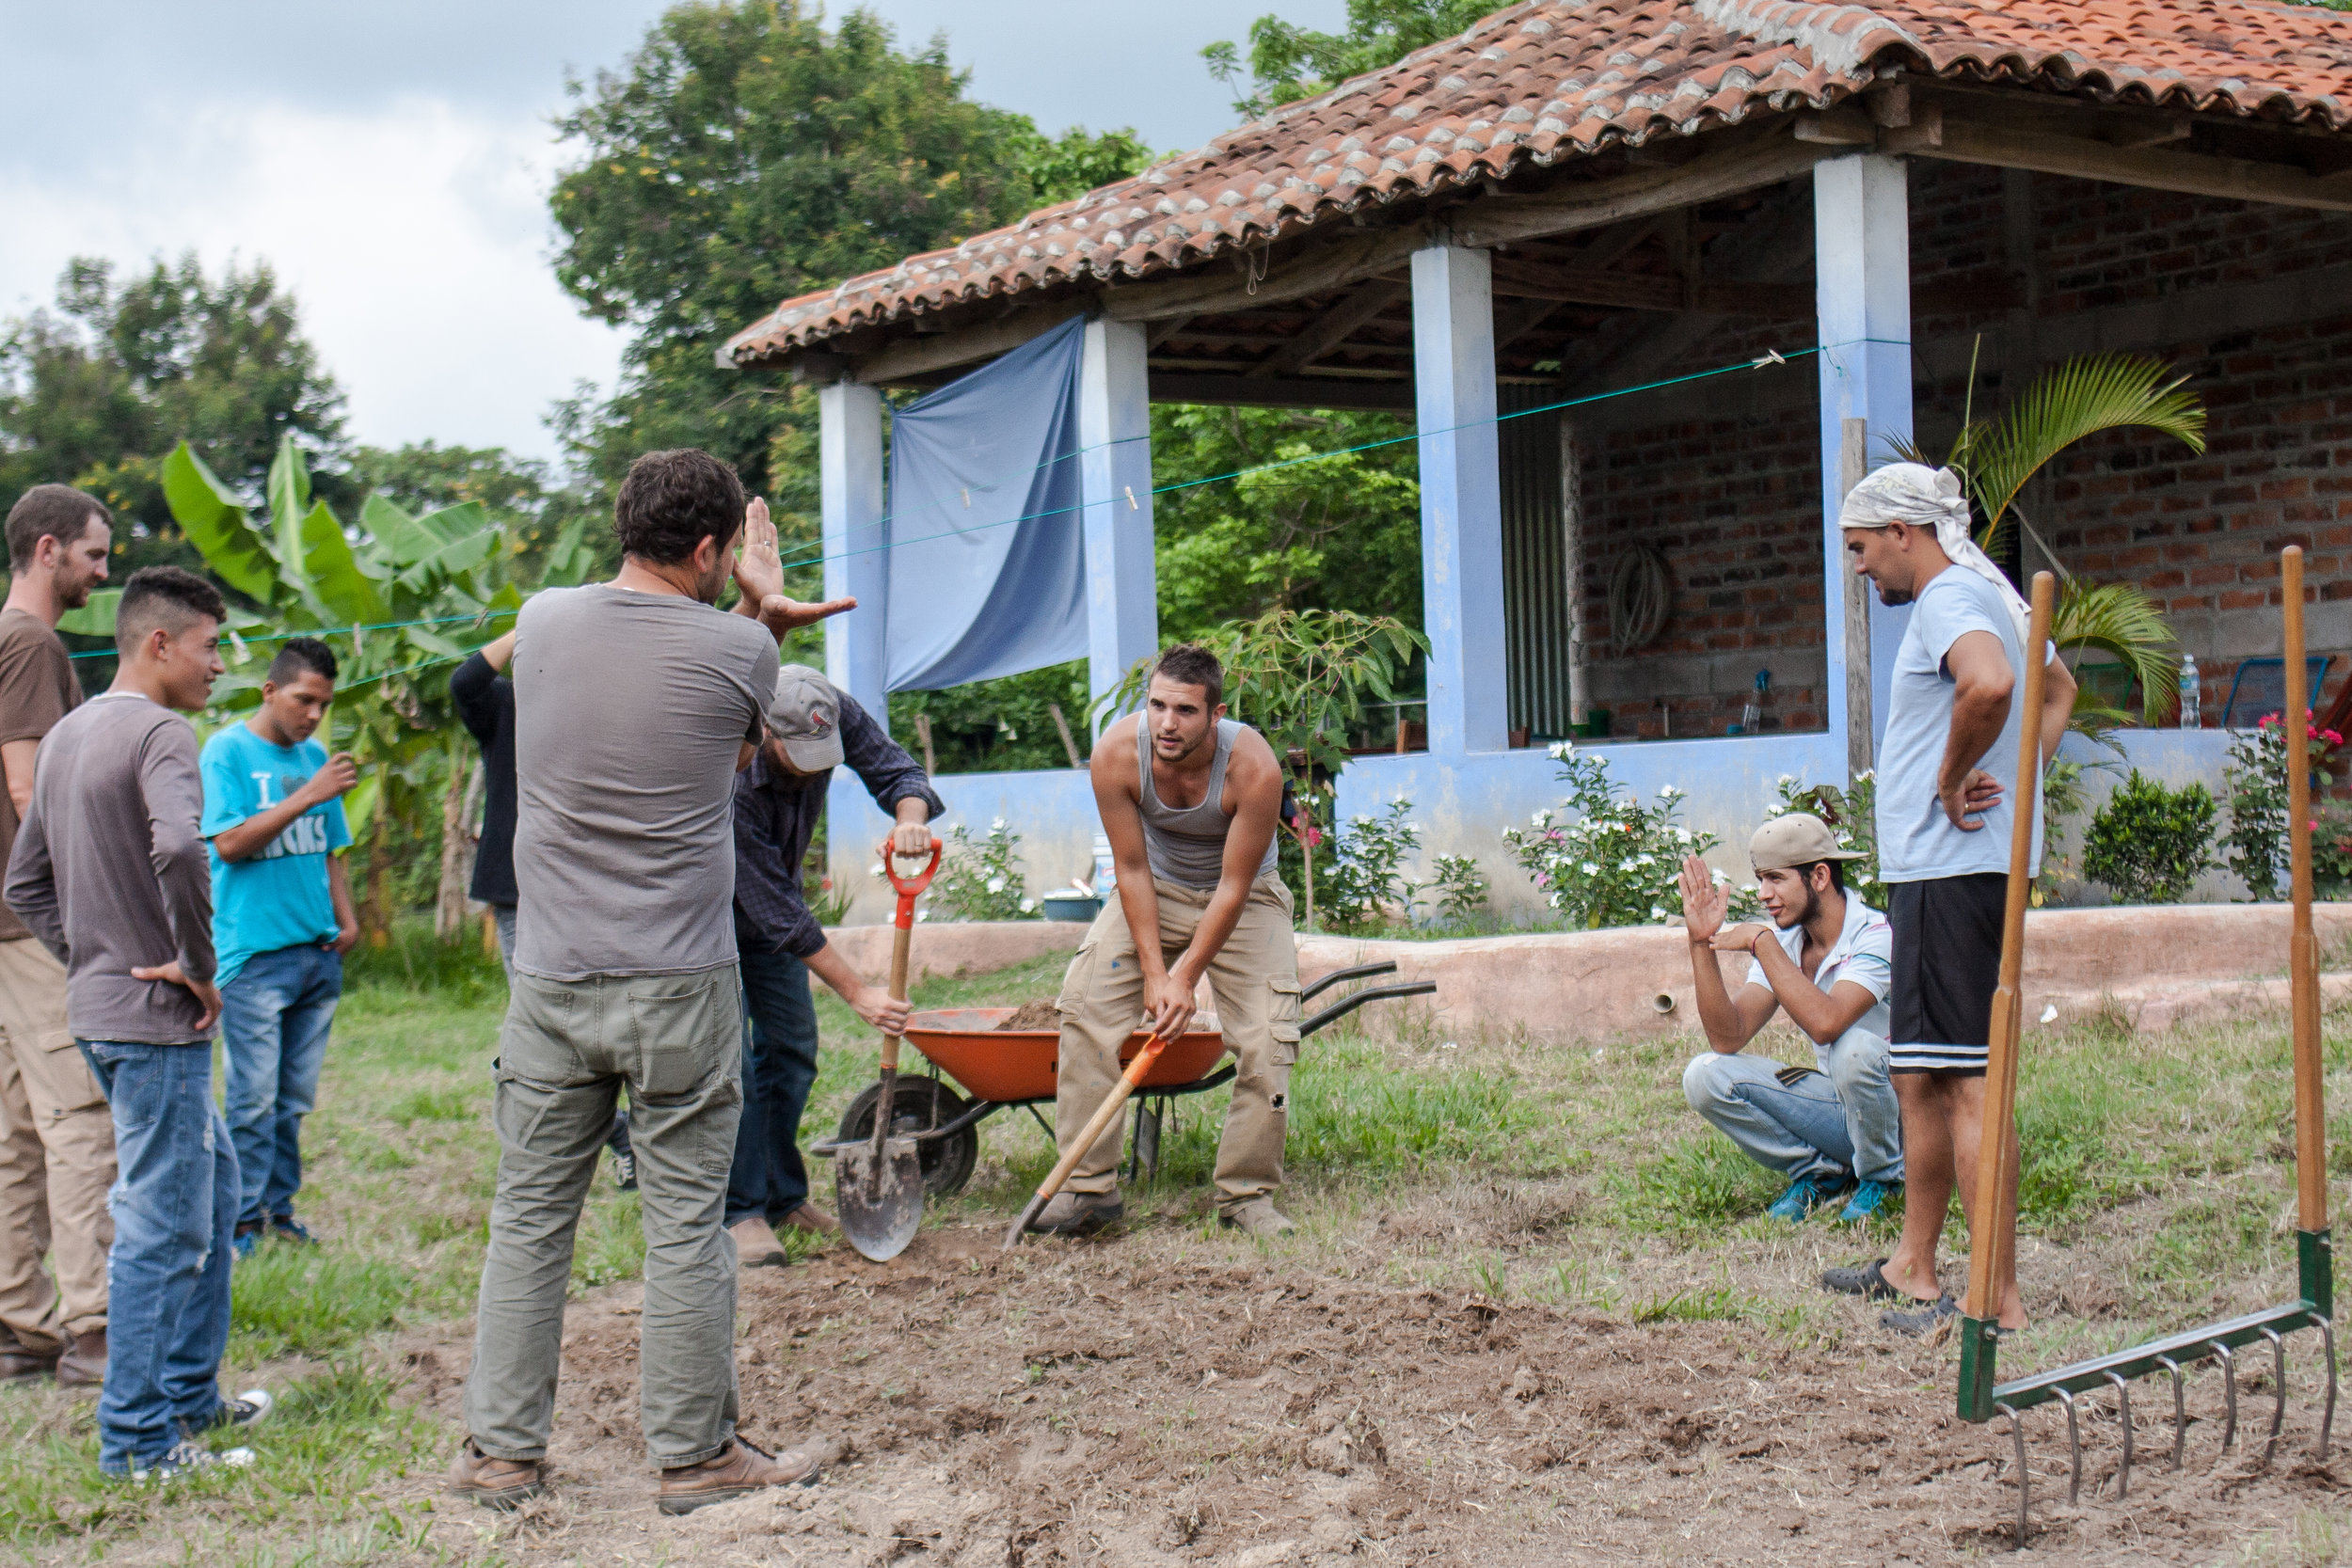 Members of G.O.D. Int'l, students from the Institute, and Salvadoran cooperatives and interns all work together to create the most productive garden we can on our El Salvador campus.